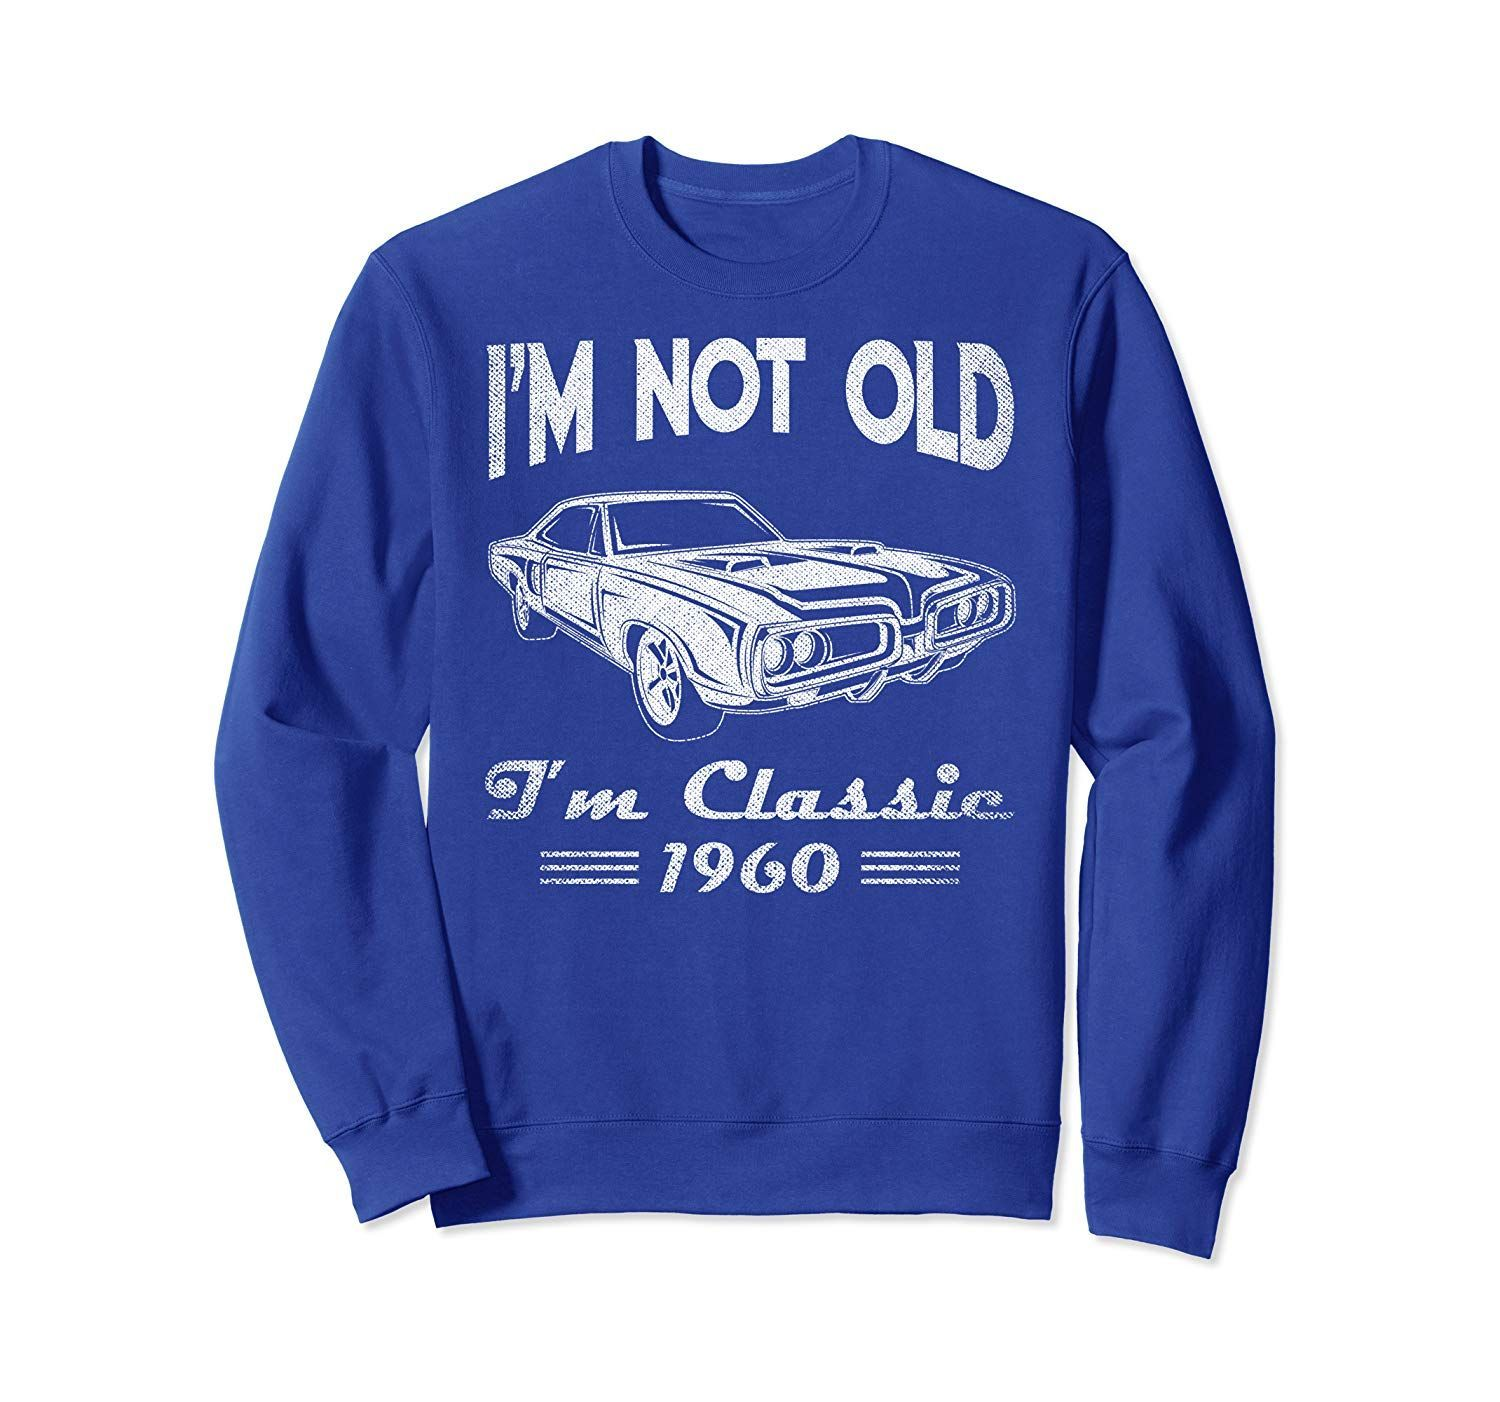 60th Birthday T Shirts For Men – Classic Car 1960 Sweatshirt